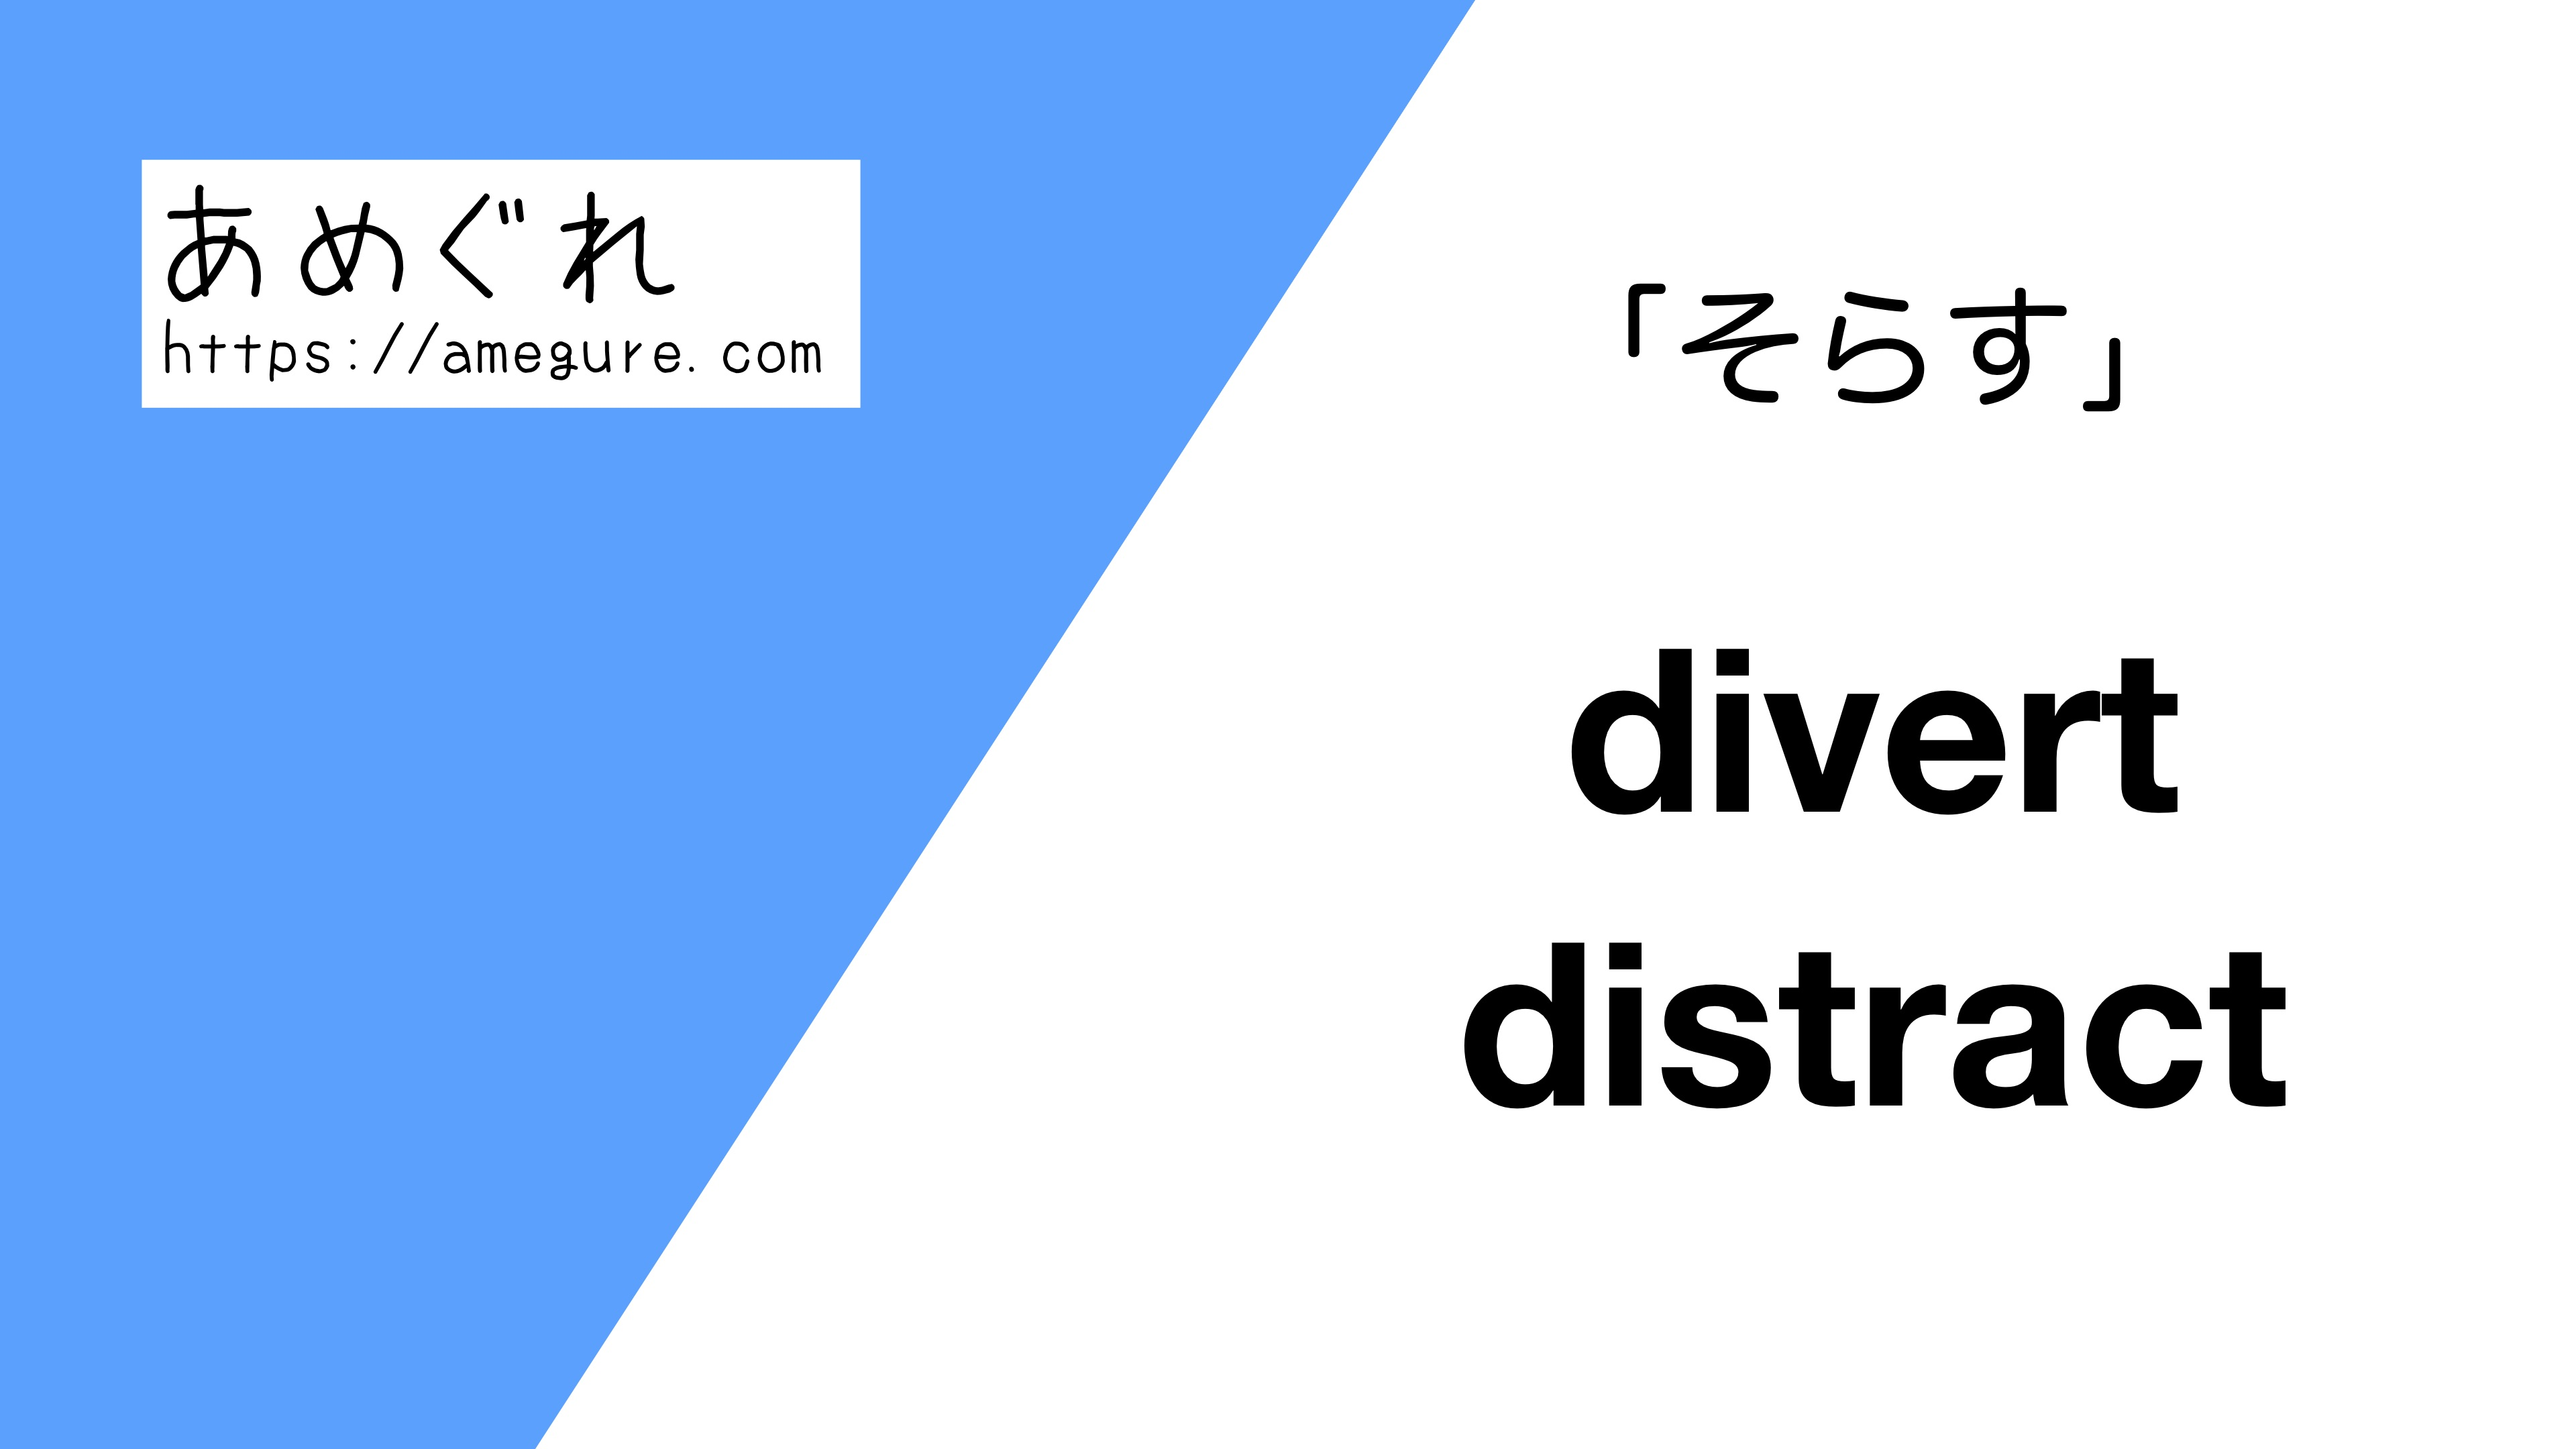 divert-distract違い